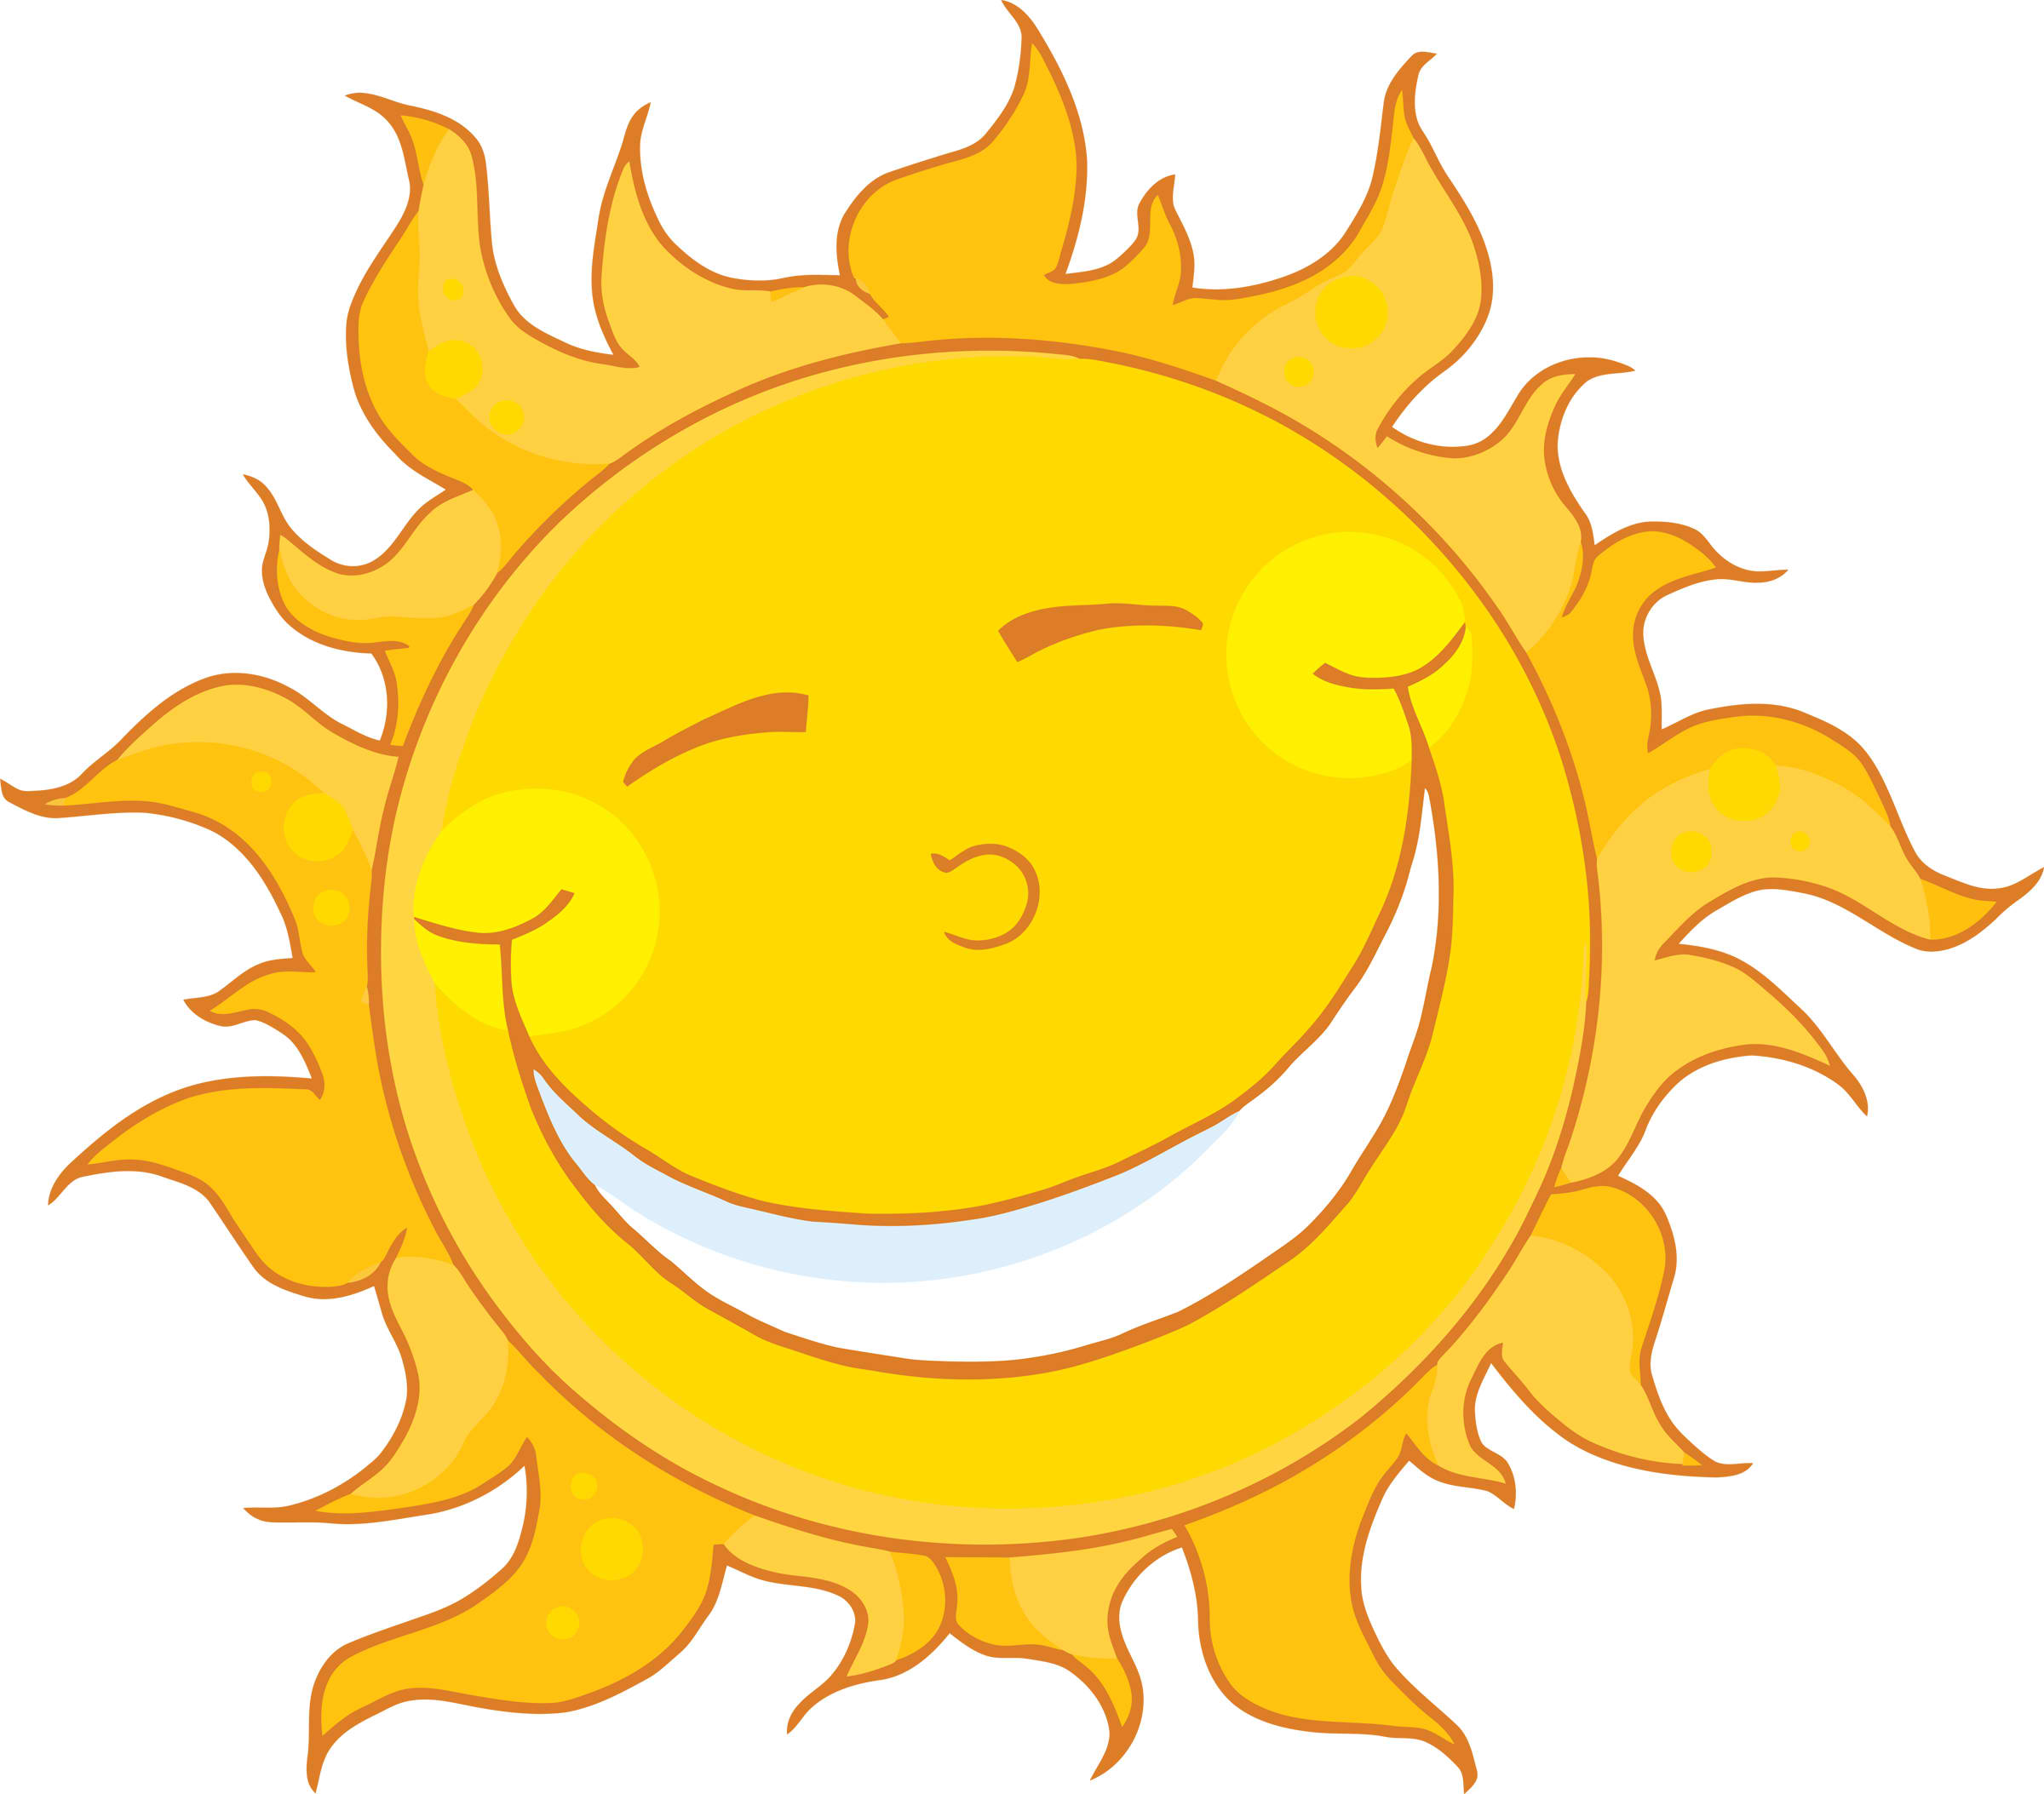 2400x2107 Sunshine Free Sun Clipart Public Domain Sun Clip Art Images And 2